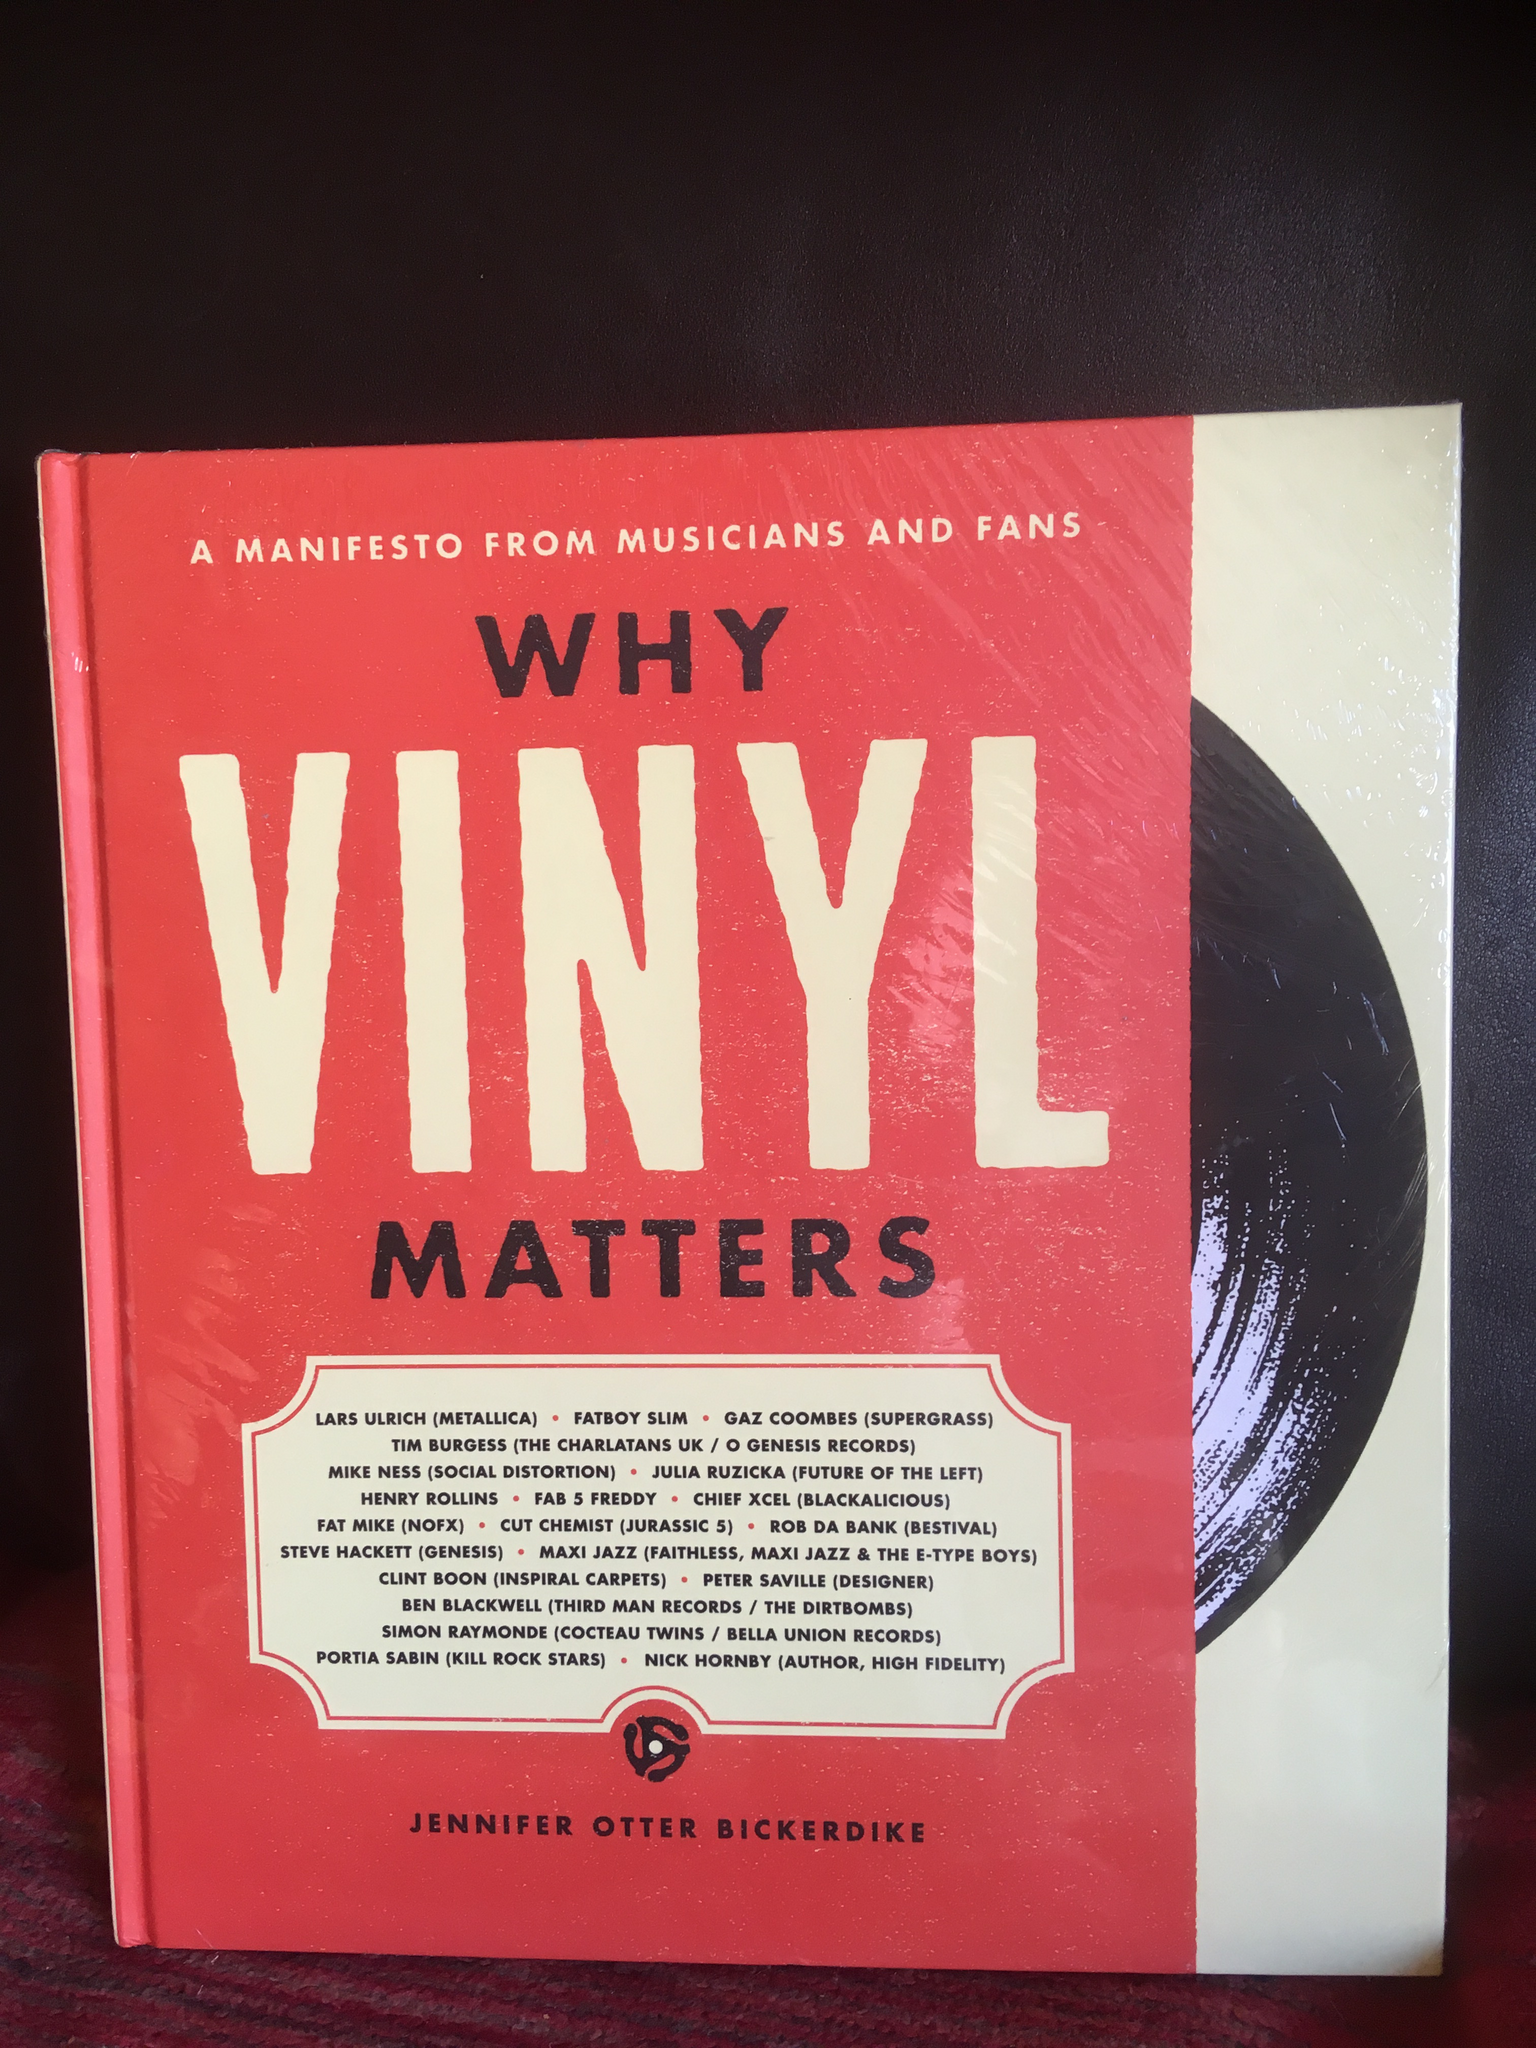 Why Vinyl Matters: A Manifesto from Musicians and Fans Hardcover by Jennifer Otter Bickerdike